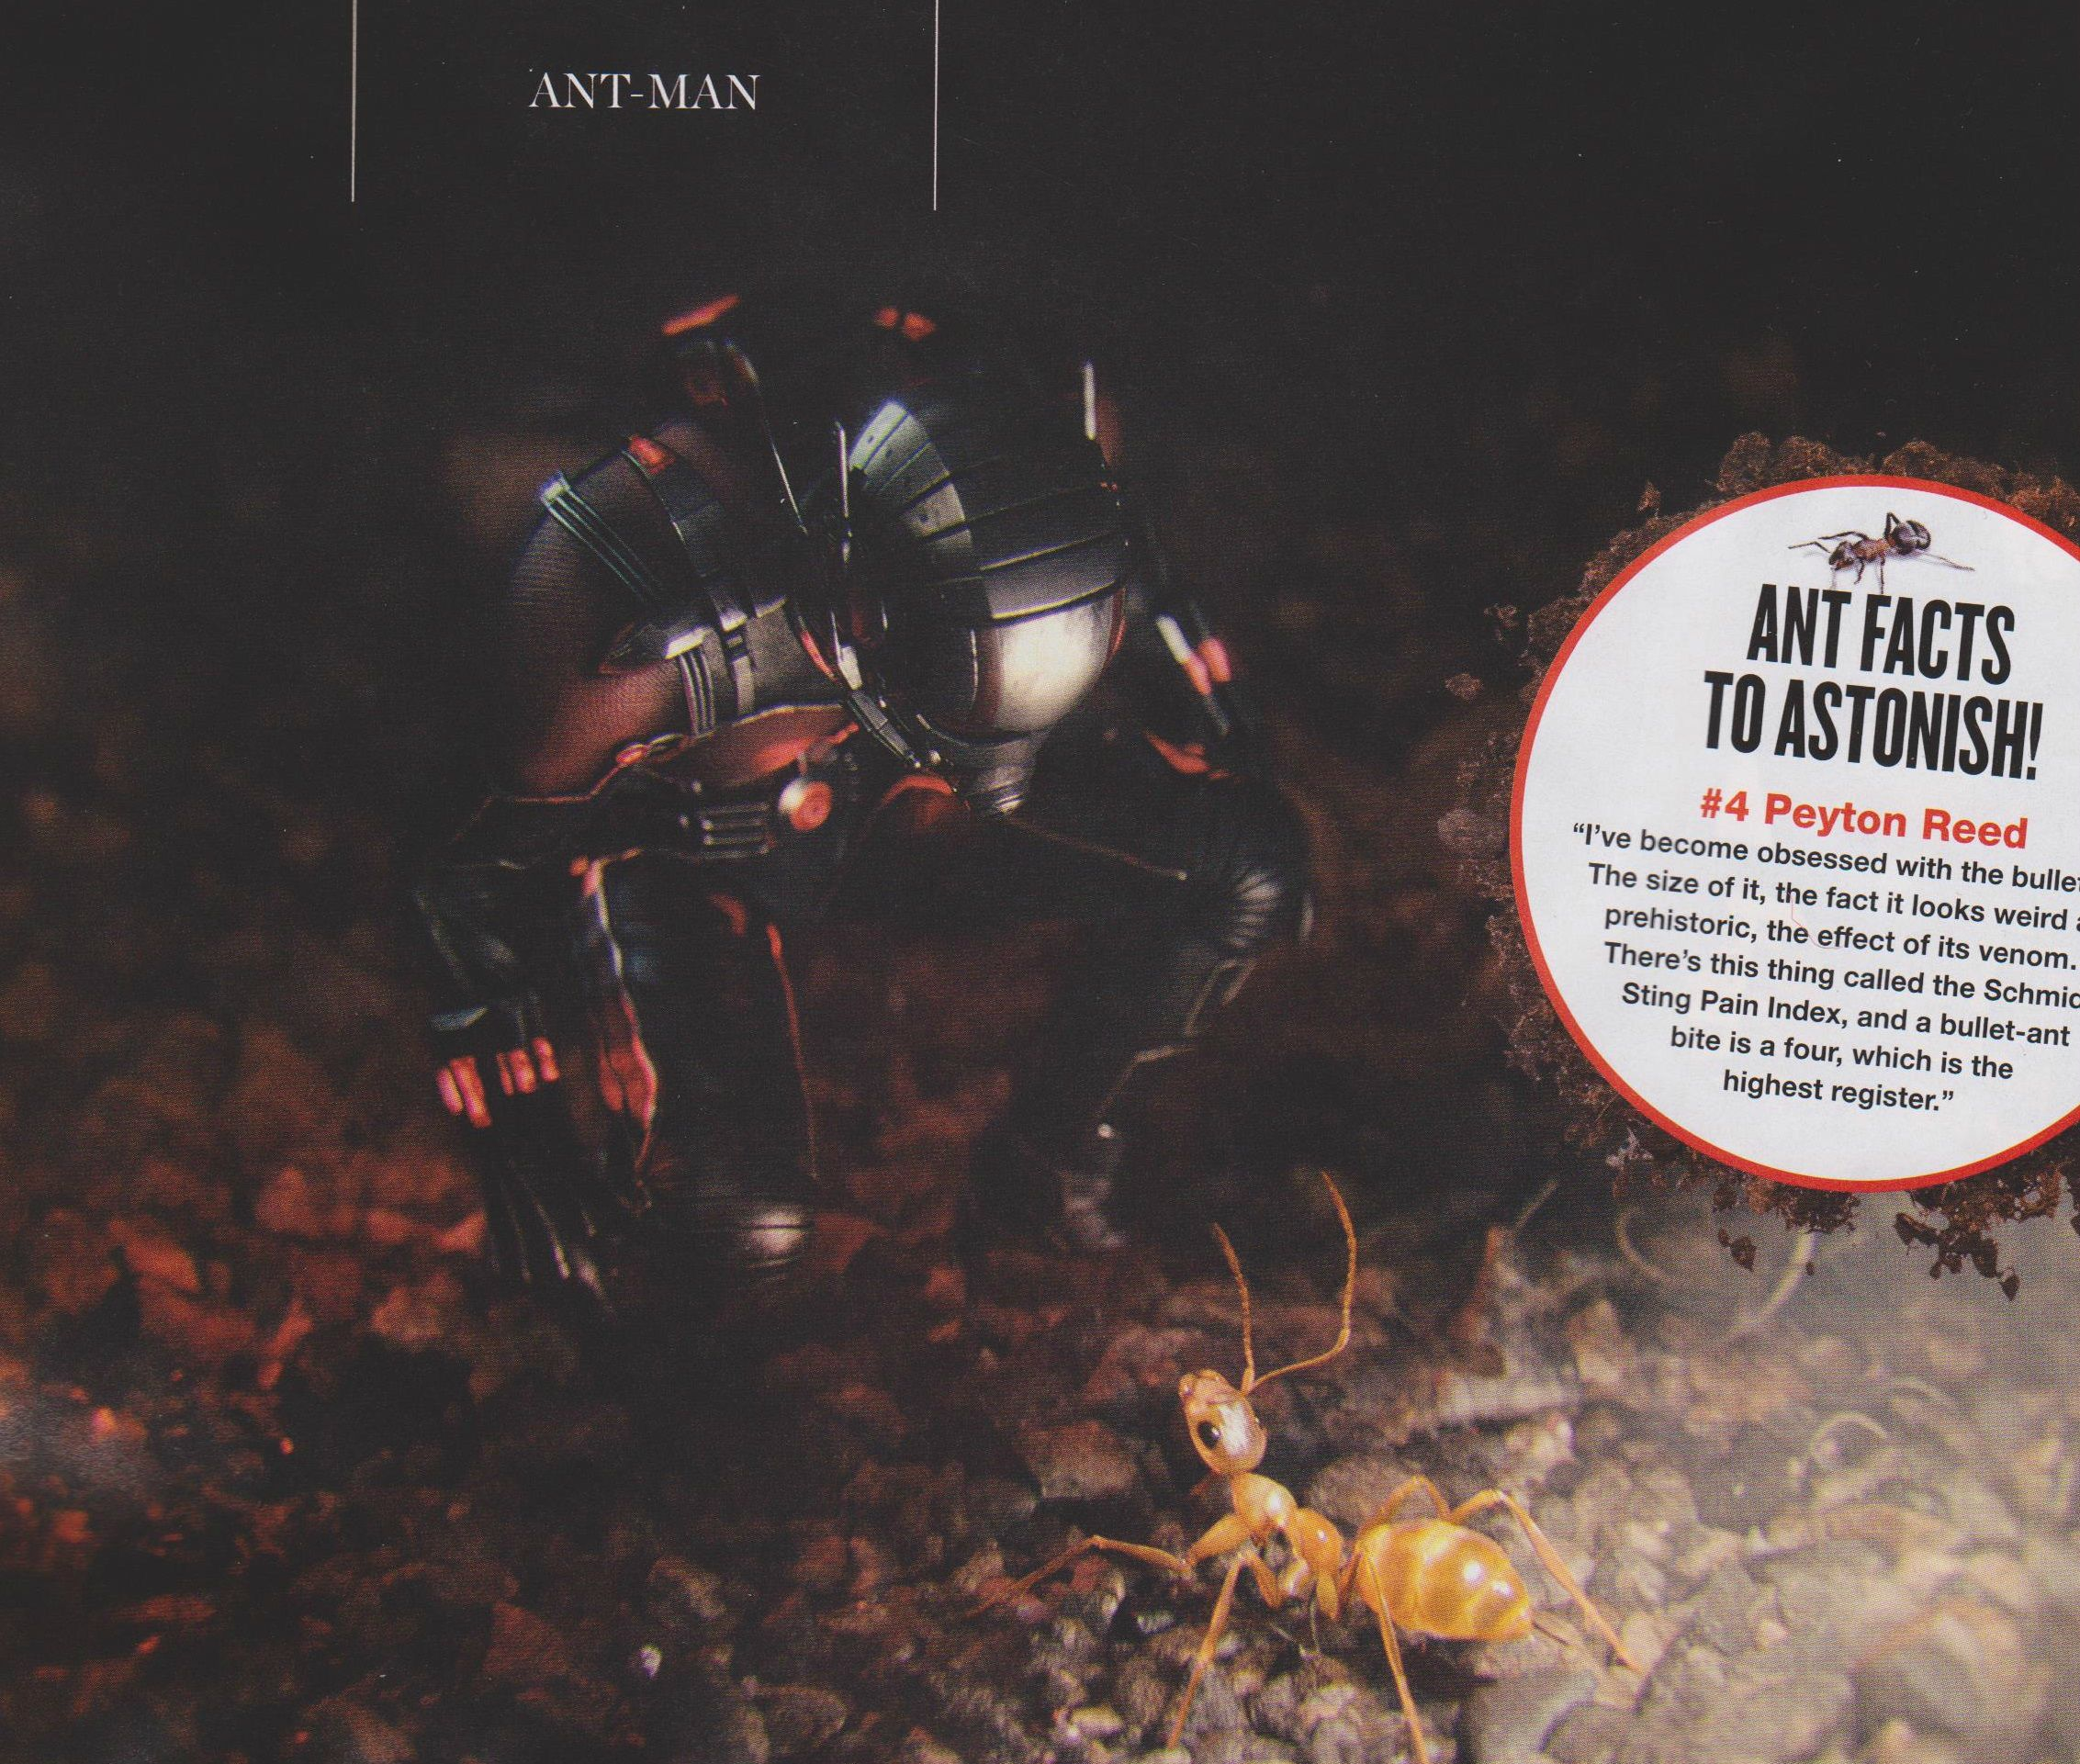 Ant-Man [Marvel - 2015] - Page 3 Ant-man-empire-image-ant